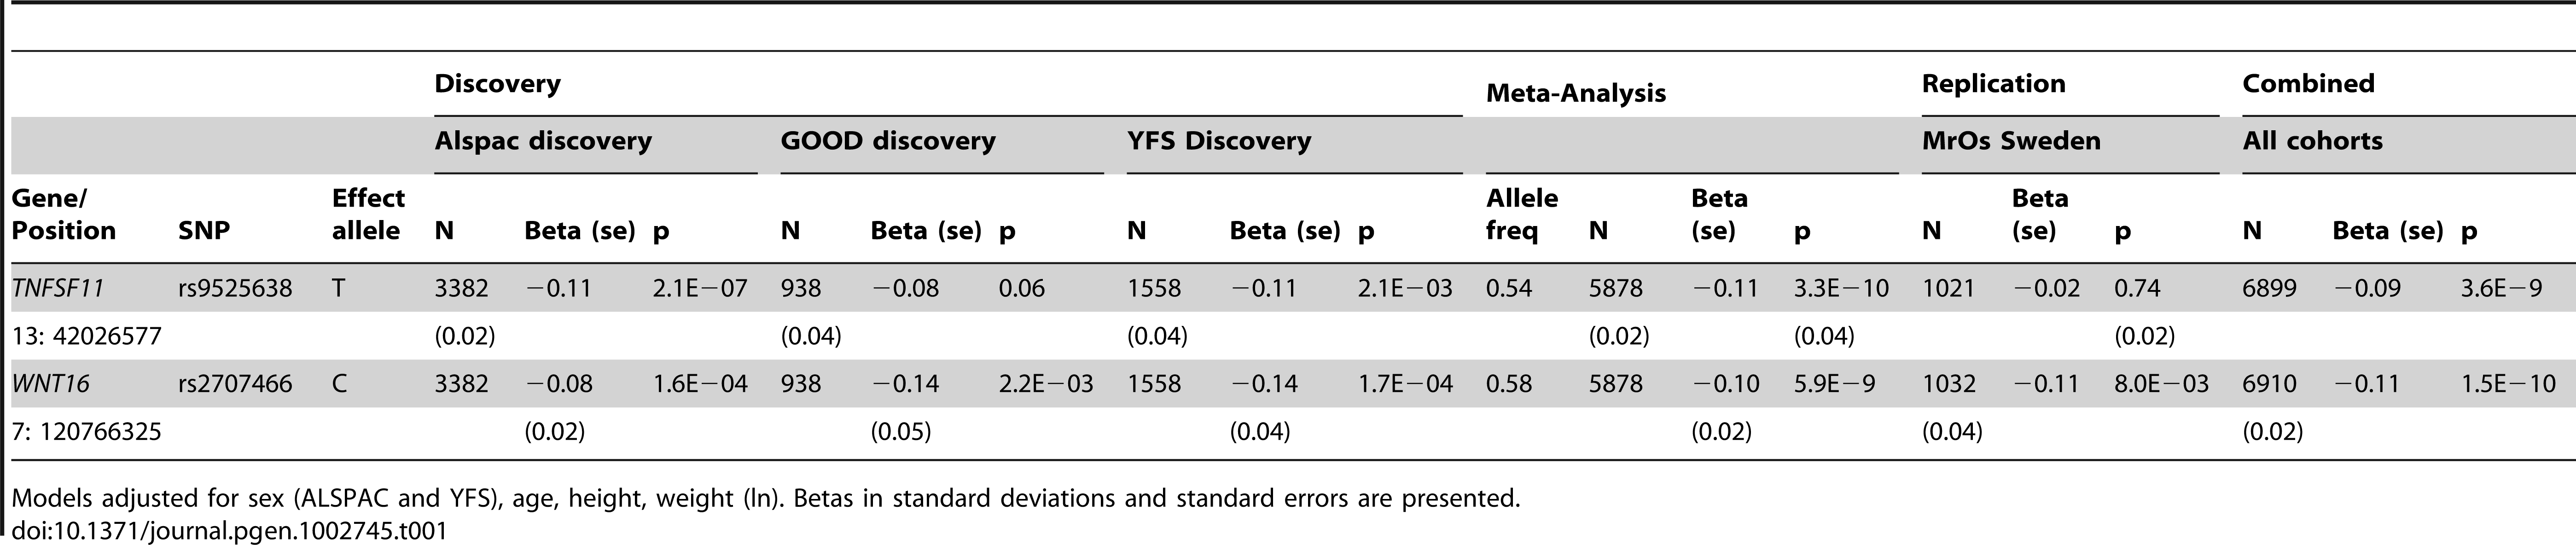 Top cortical thickness GWA meta-analysis hits, with replication and meta-analysis of all four cohorts.